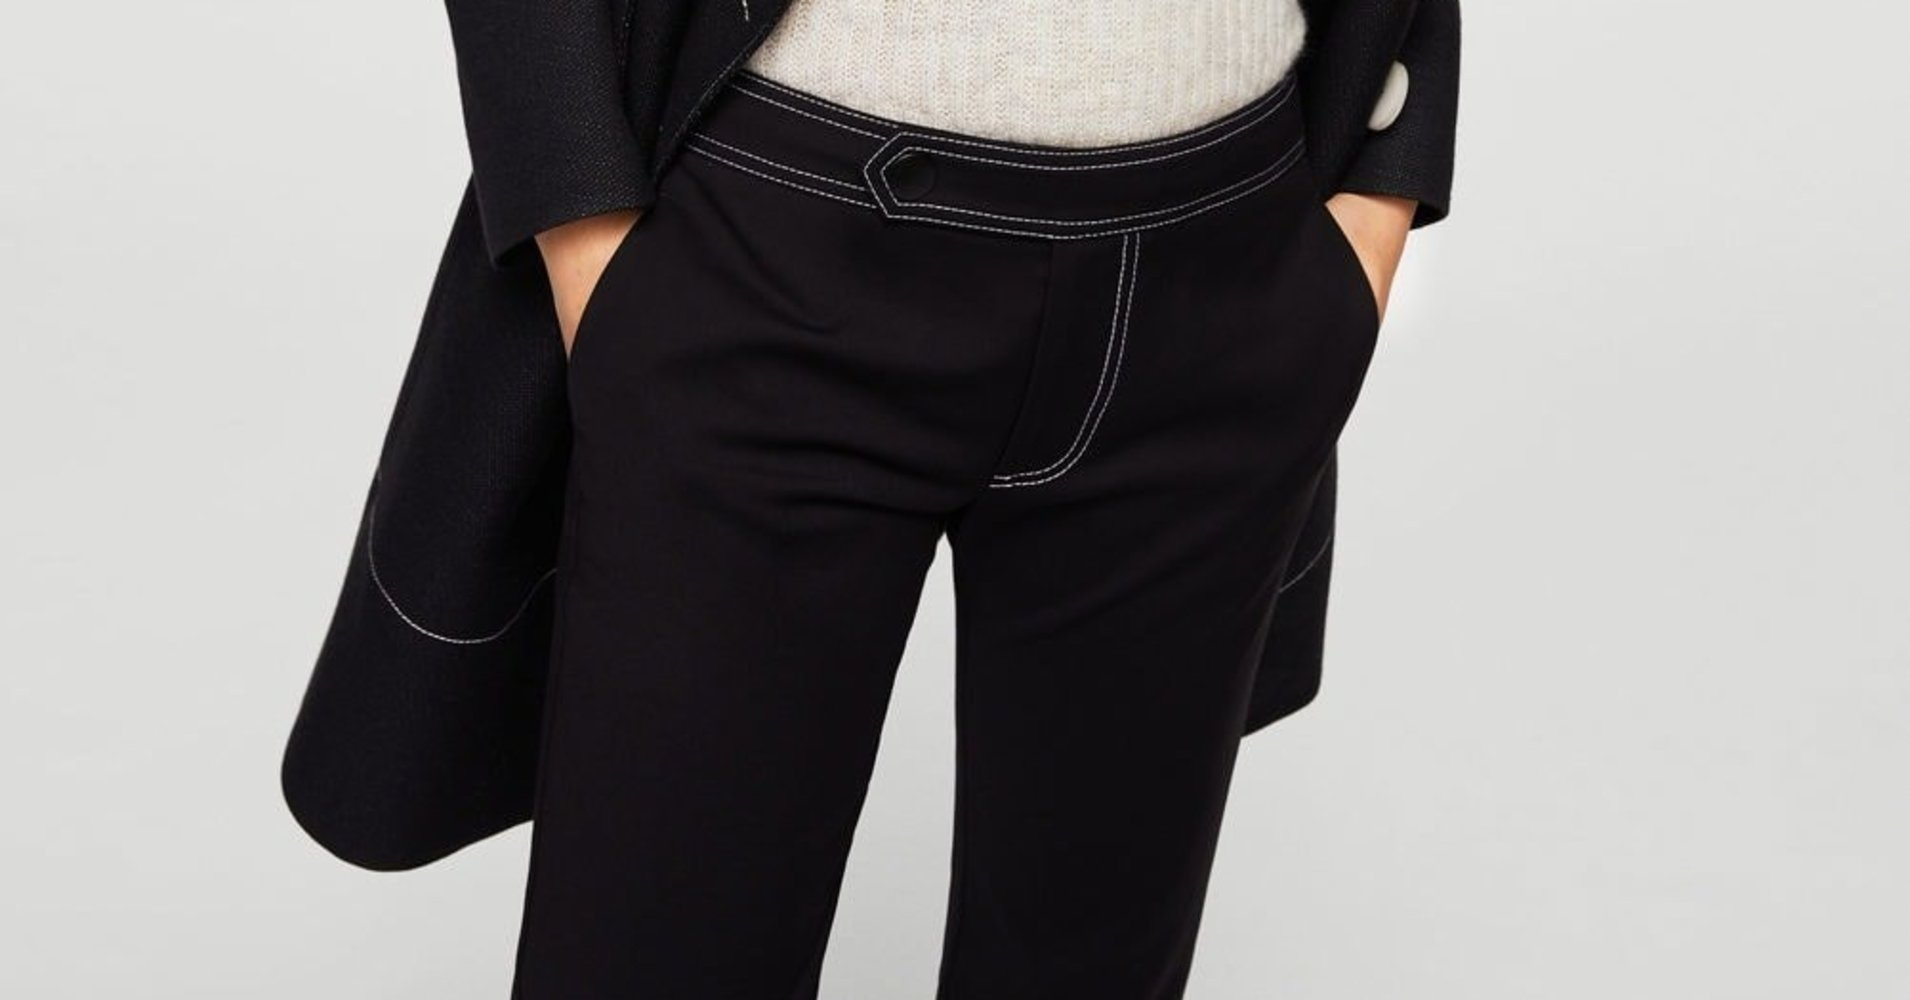 15 Versatile Black Trousers That Look Good On Every Body